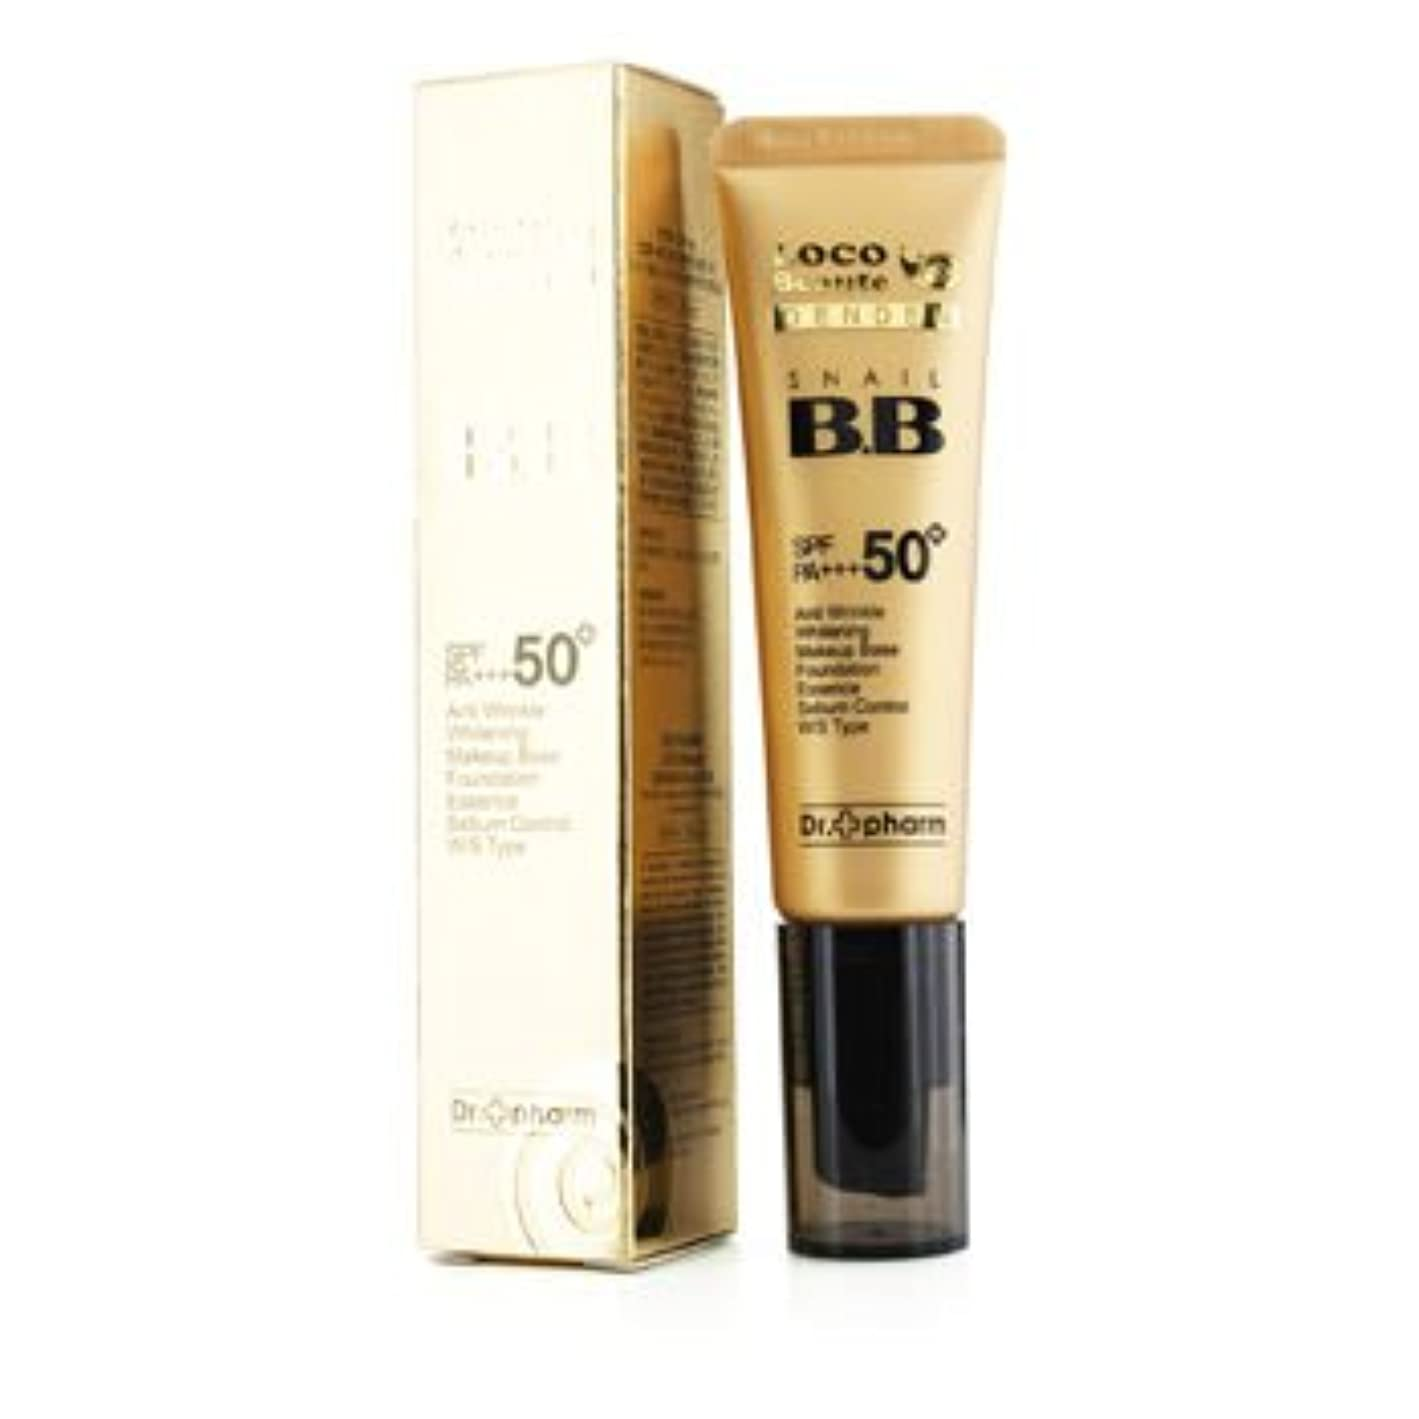 底免除するオペラDr. Pharm LOCO Beaute DenDen Snail BB Cream SPF5030ml/1oz並行輸入品